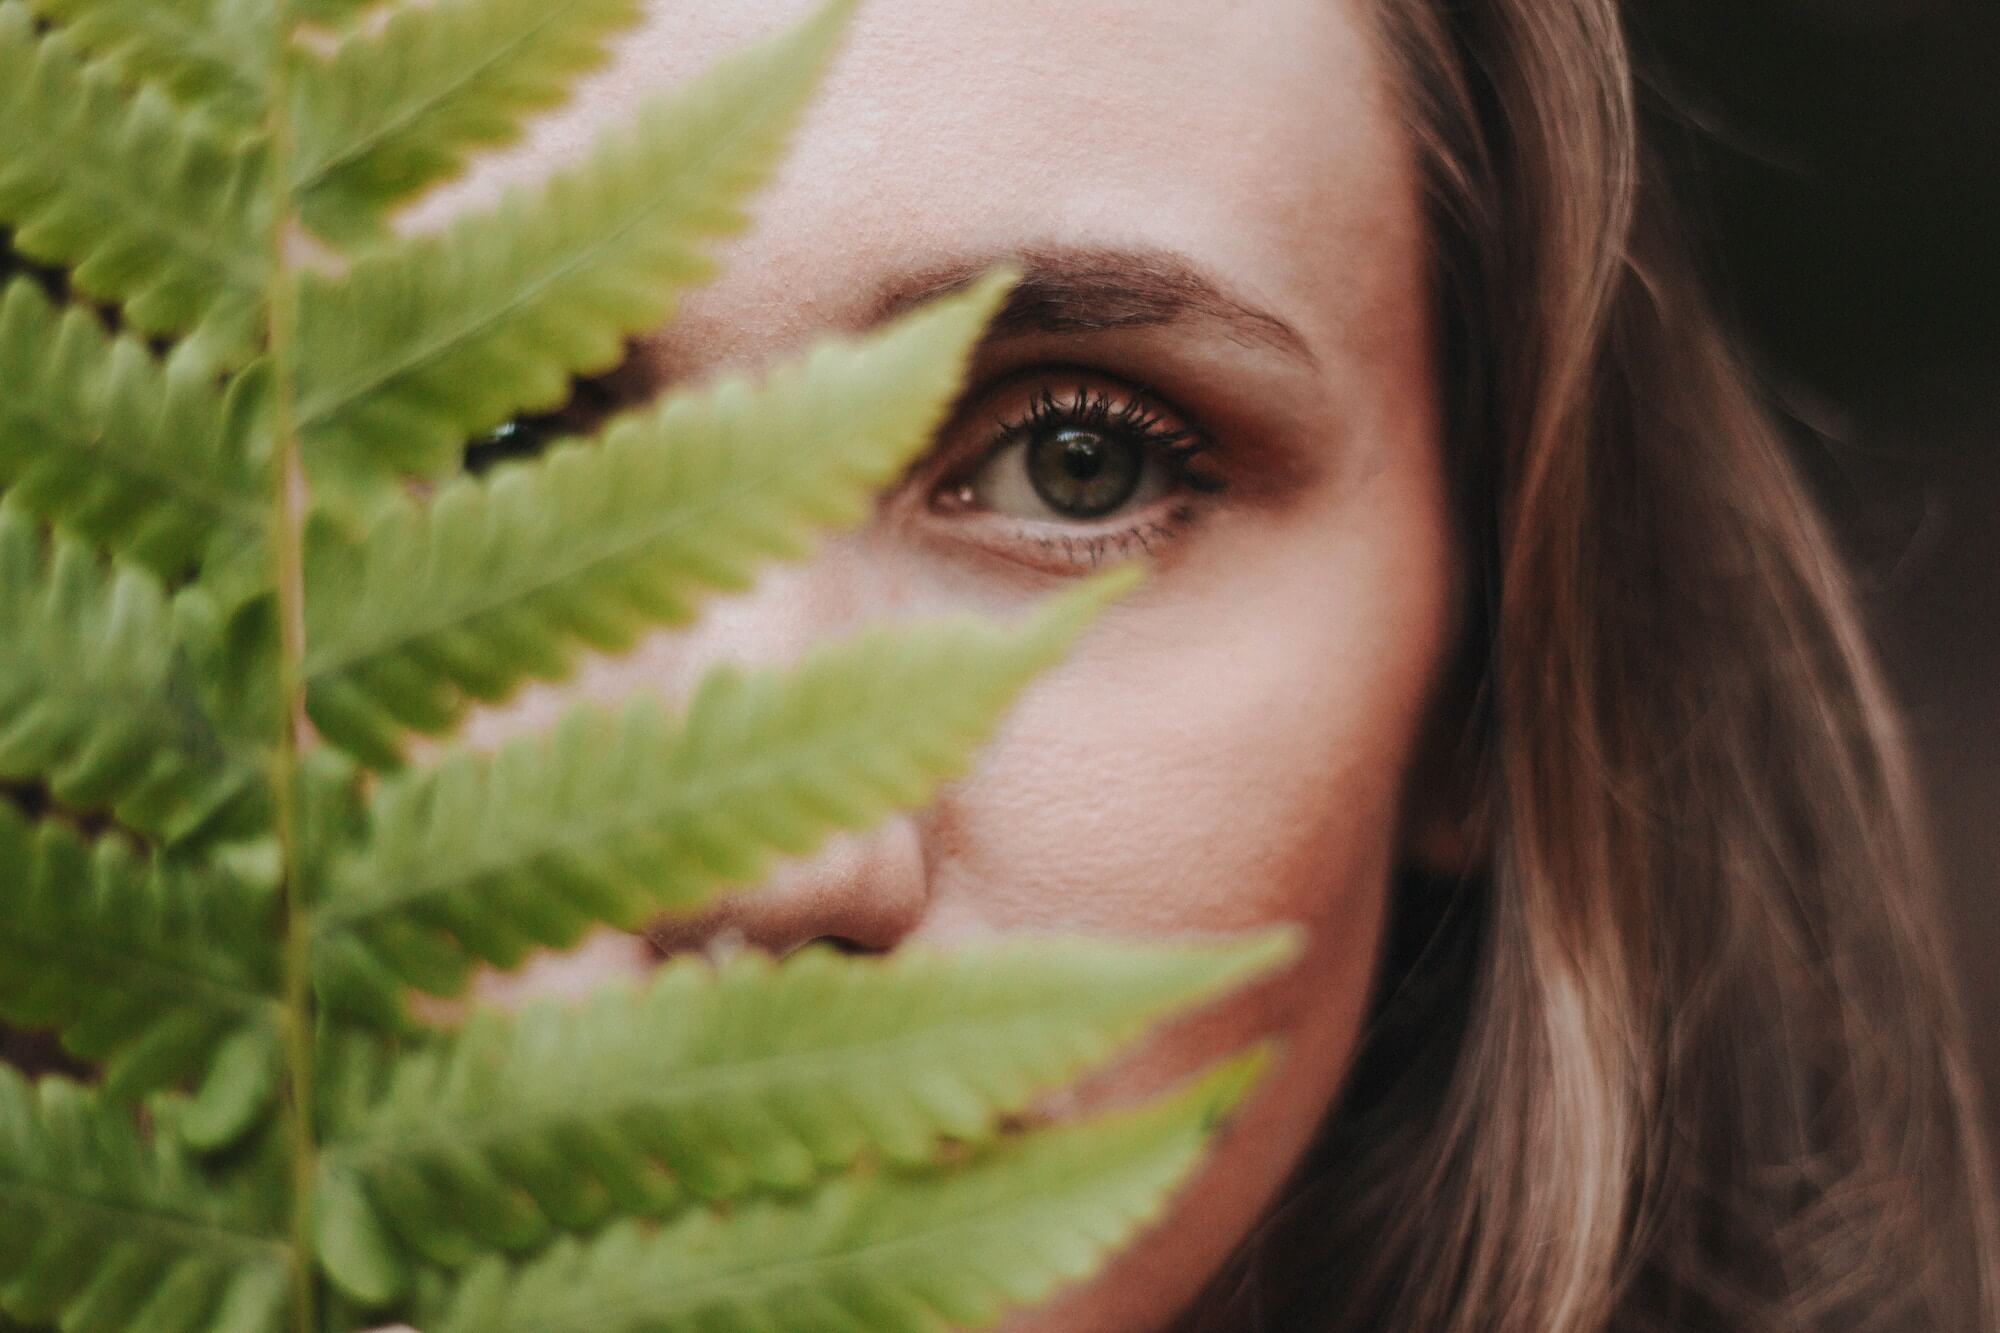 Woman Face Obscured by Fern